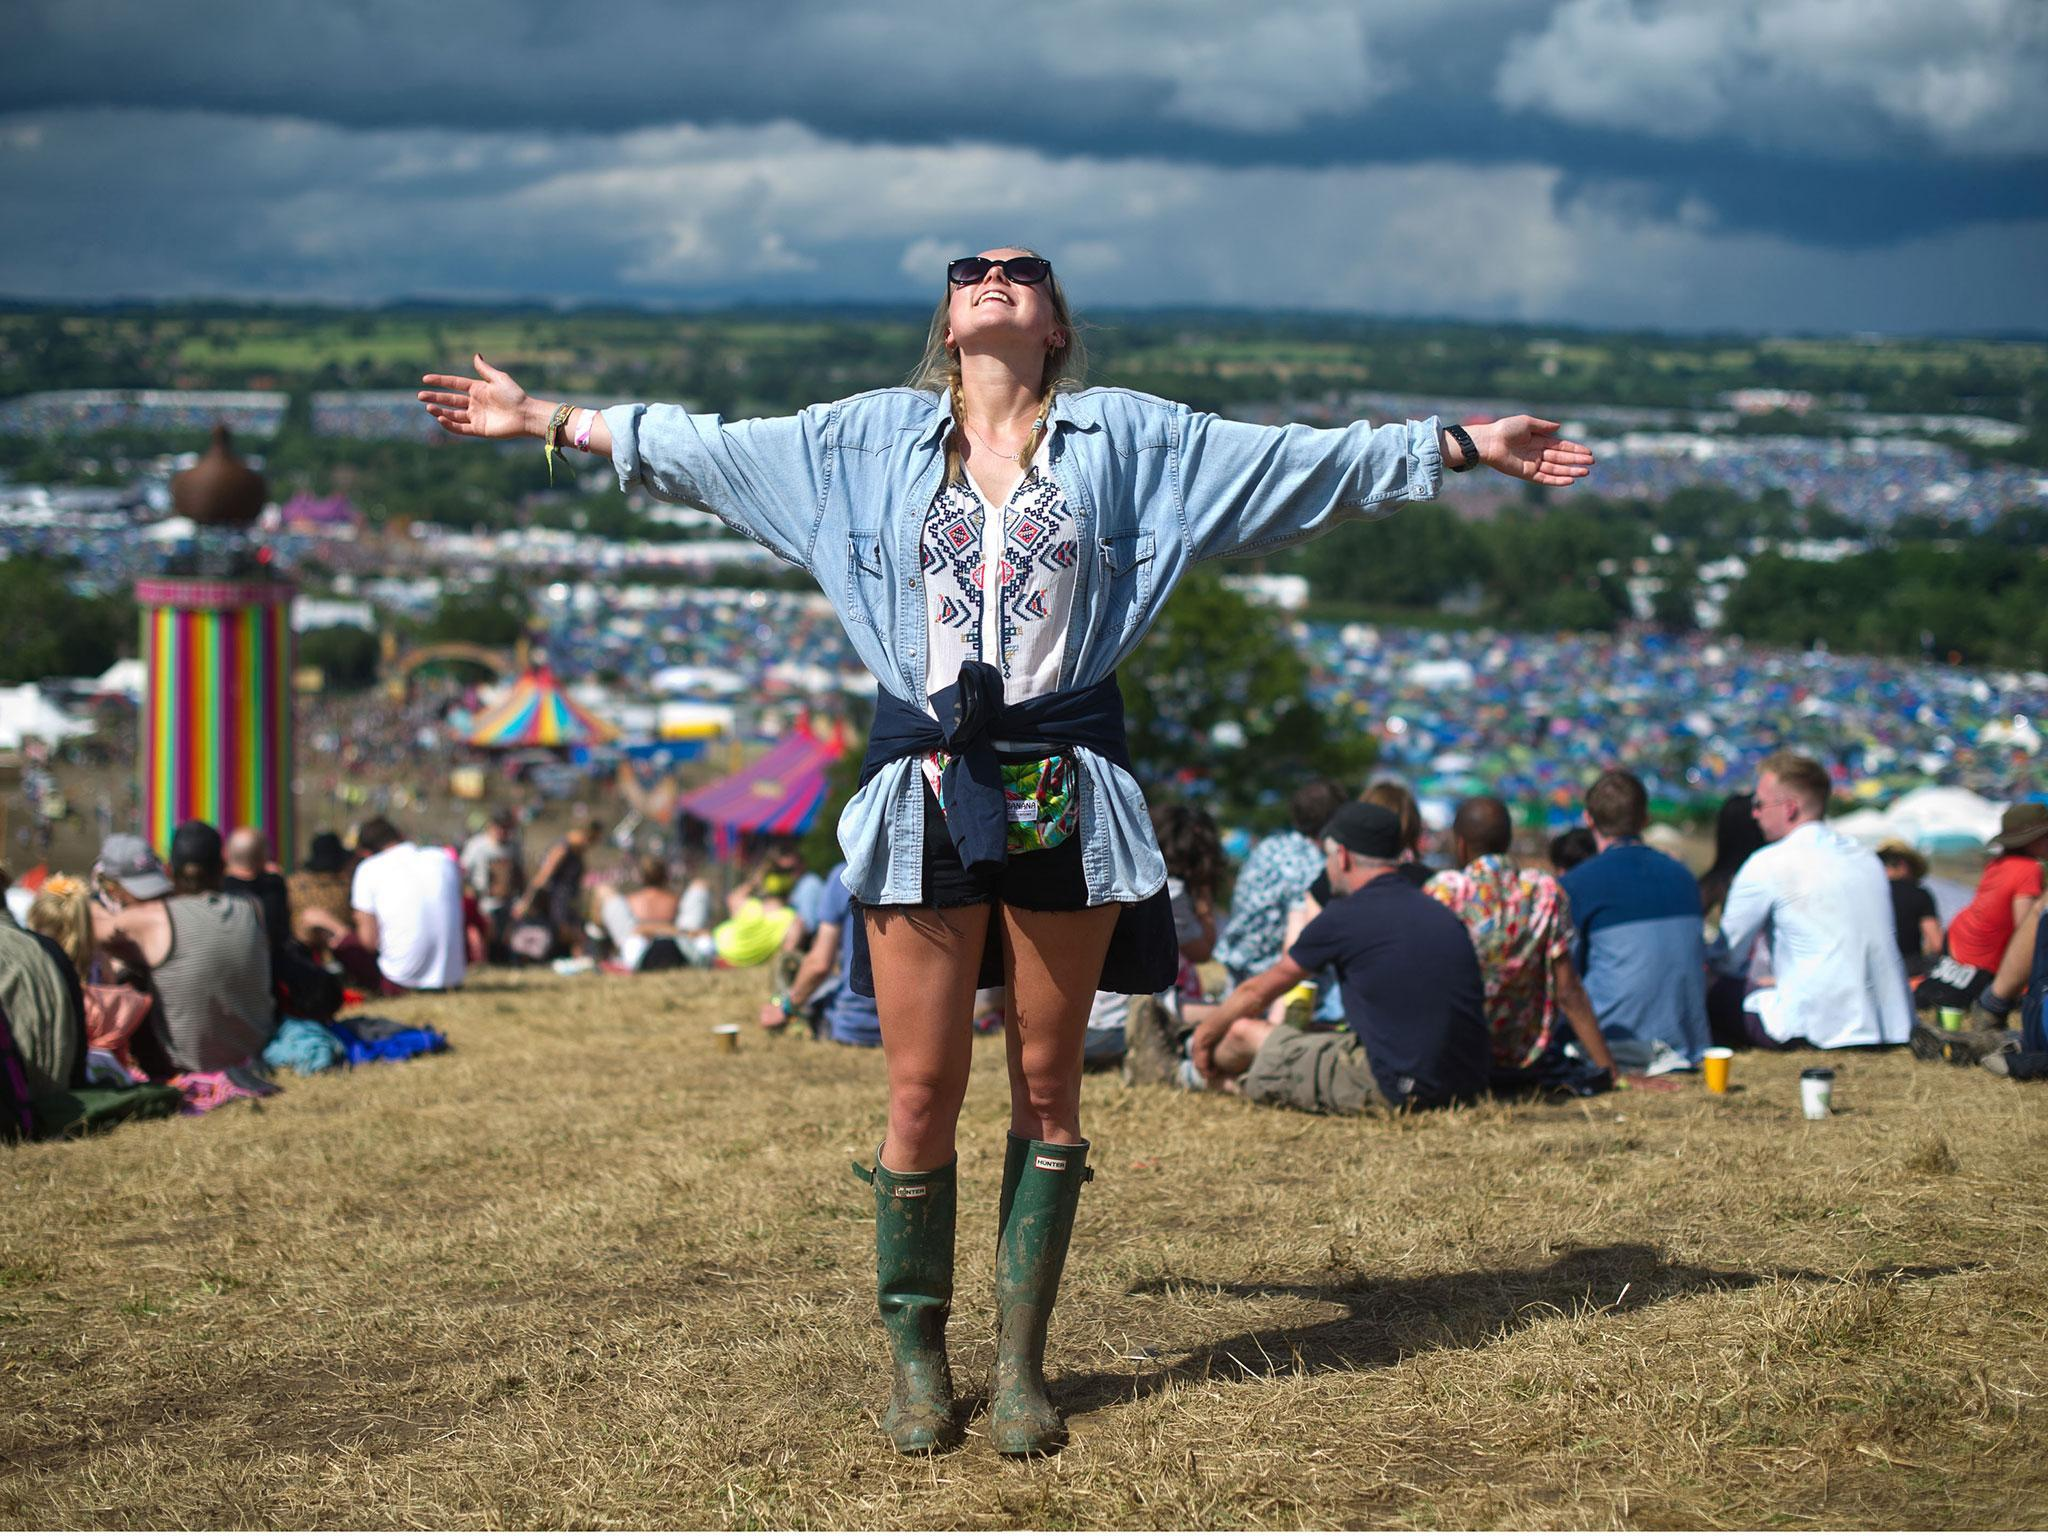 9 Best Festival Waterproof Jackets For Women The Independent